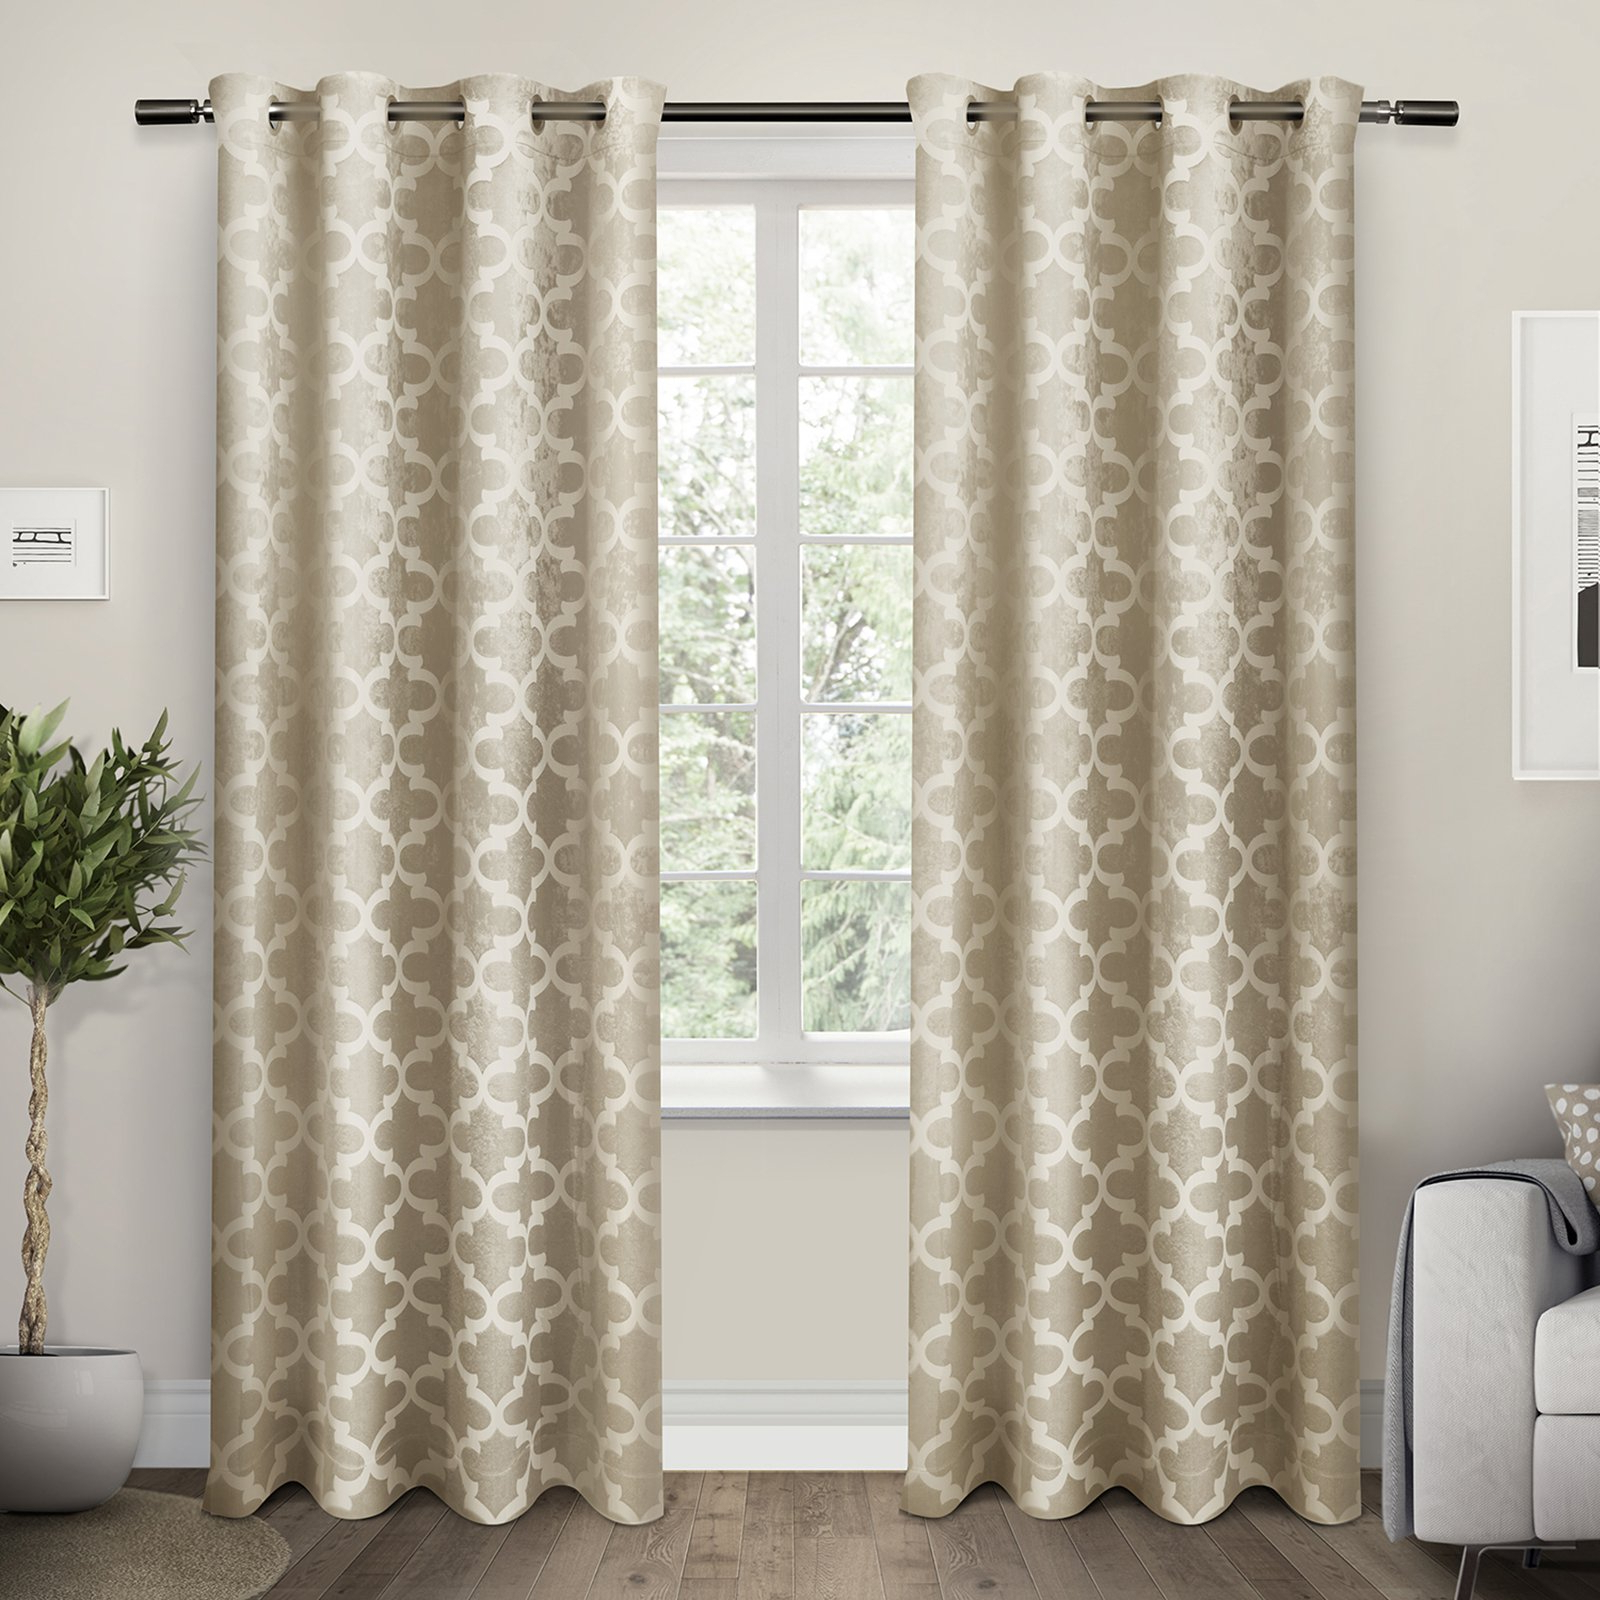 Woven Blackout Grommet Top Curtain Panel Pairs Inside Recent Cartago Woven Blackout Grommet Top Window Curtain Panel Pair (View 14 of 20)